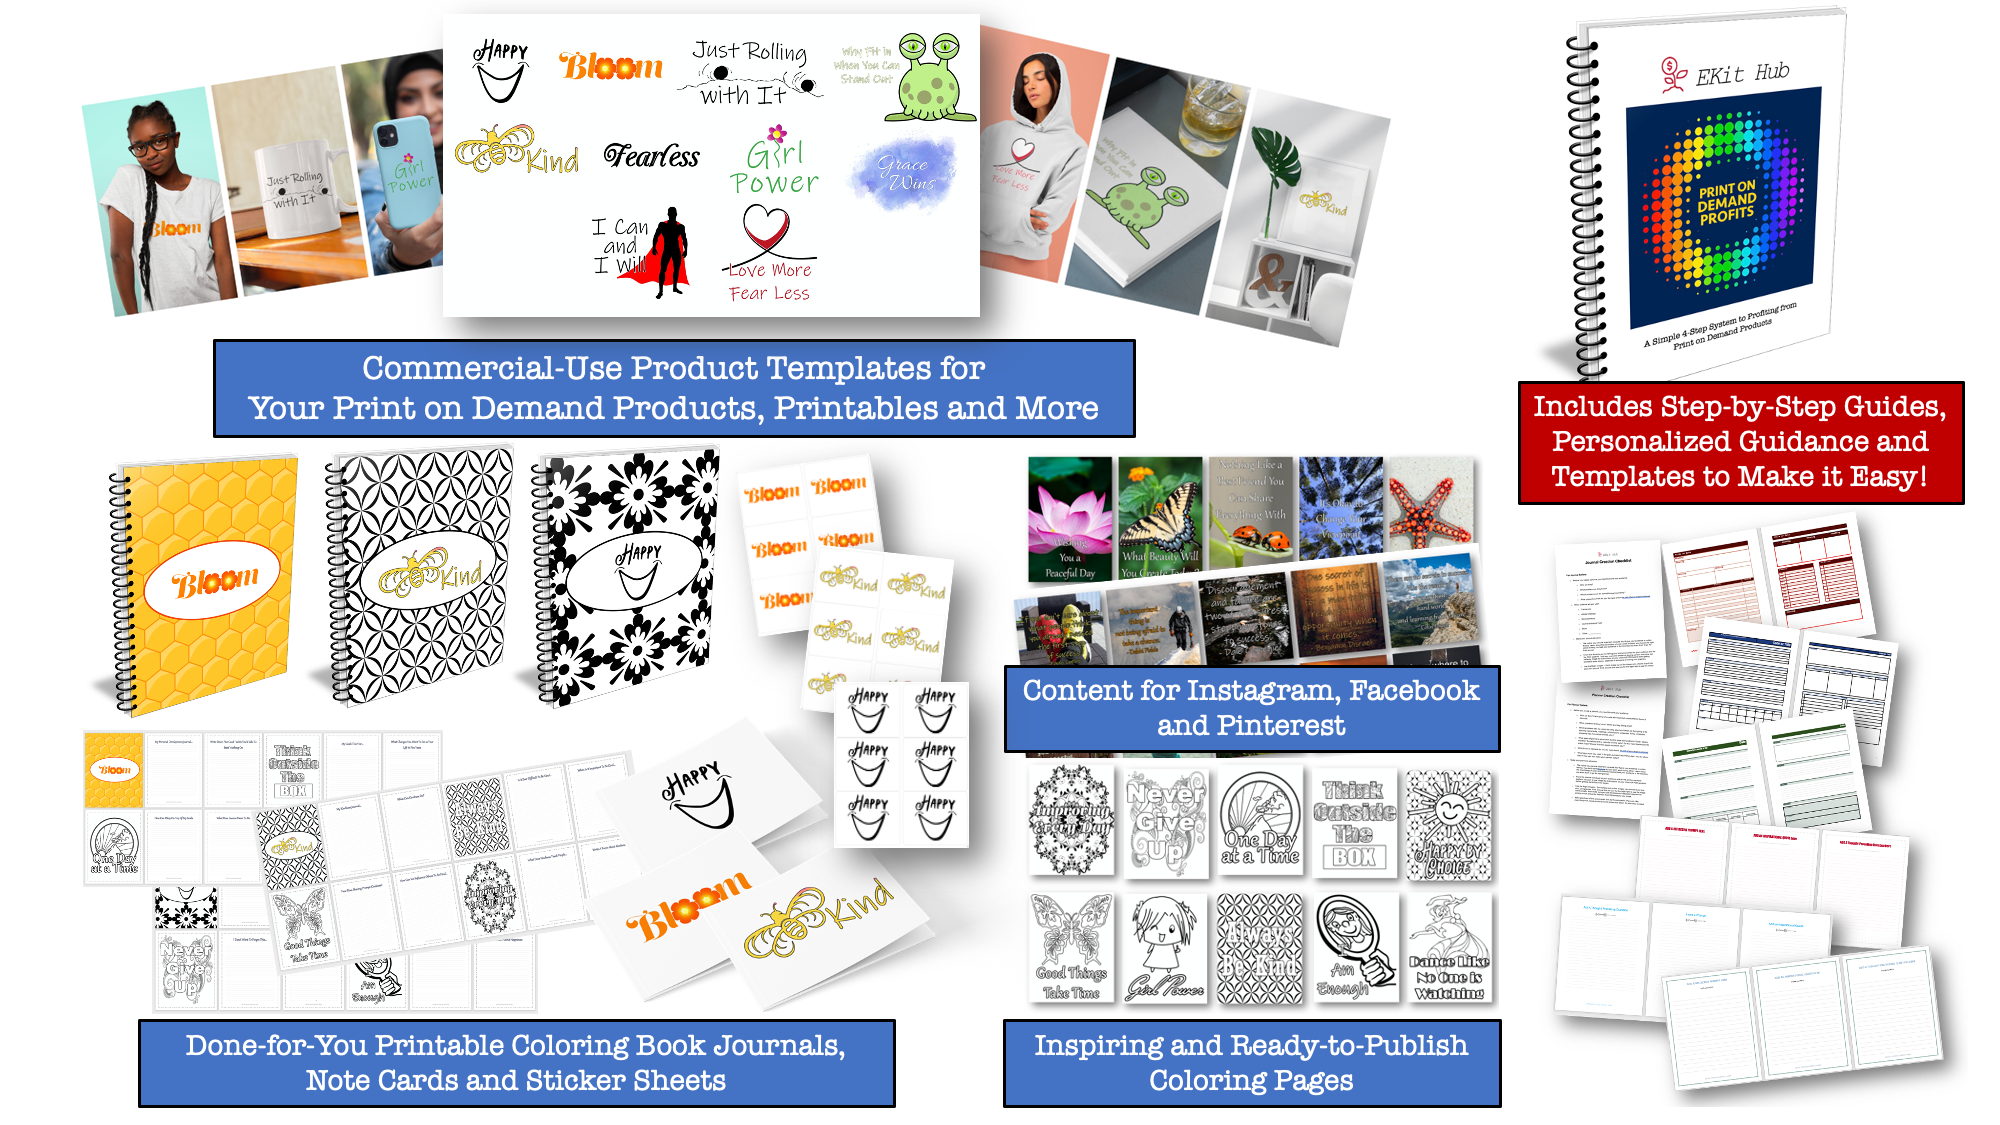 Inspiration PLR for Print on Demand Products and Printables